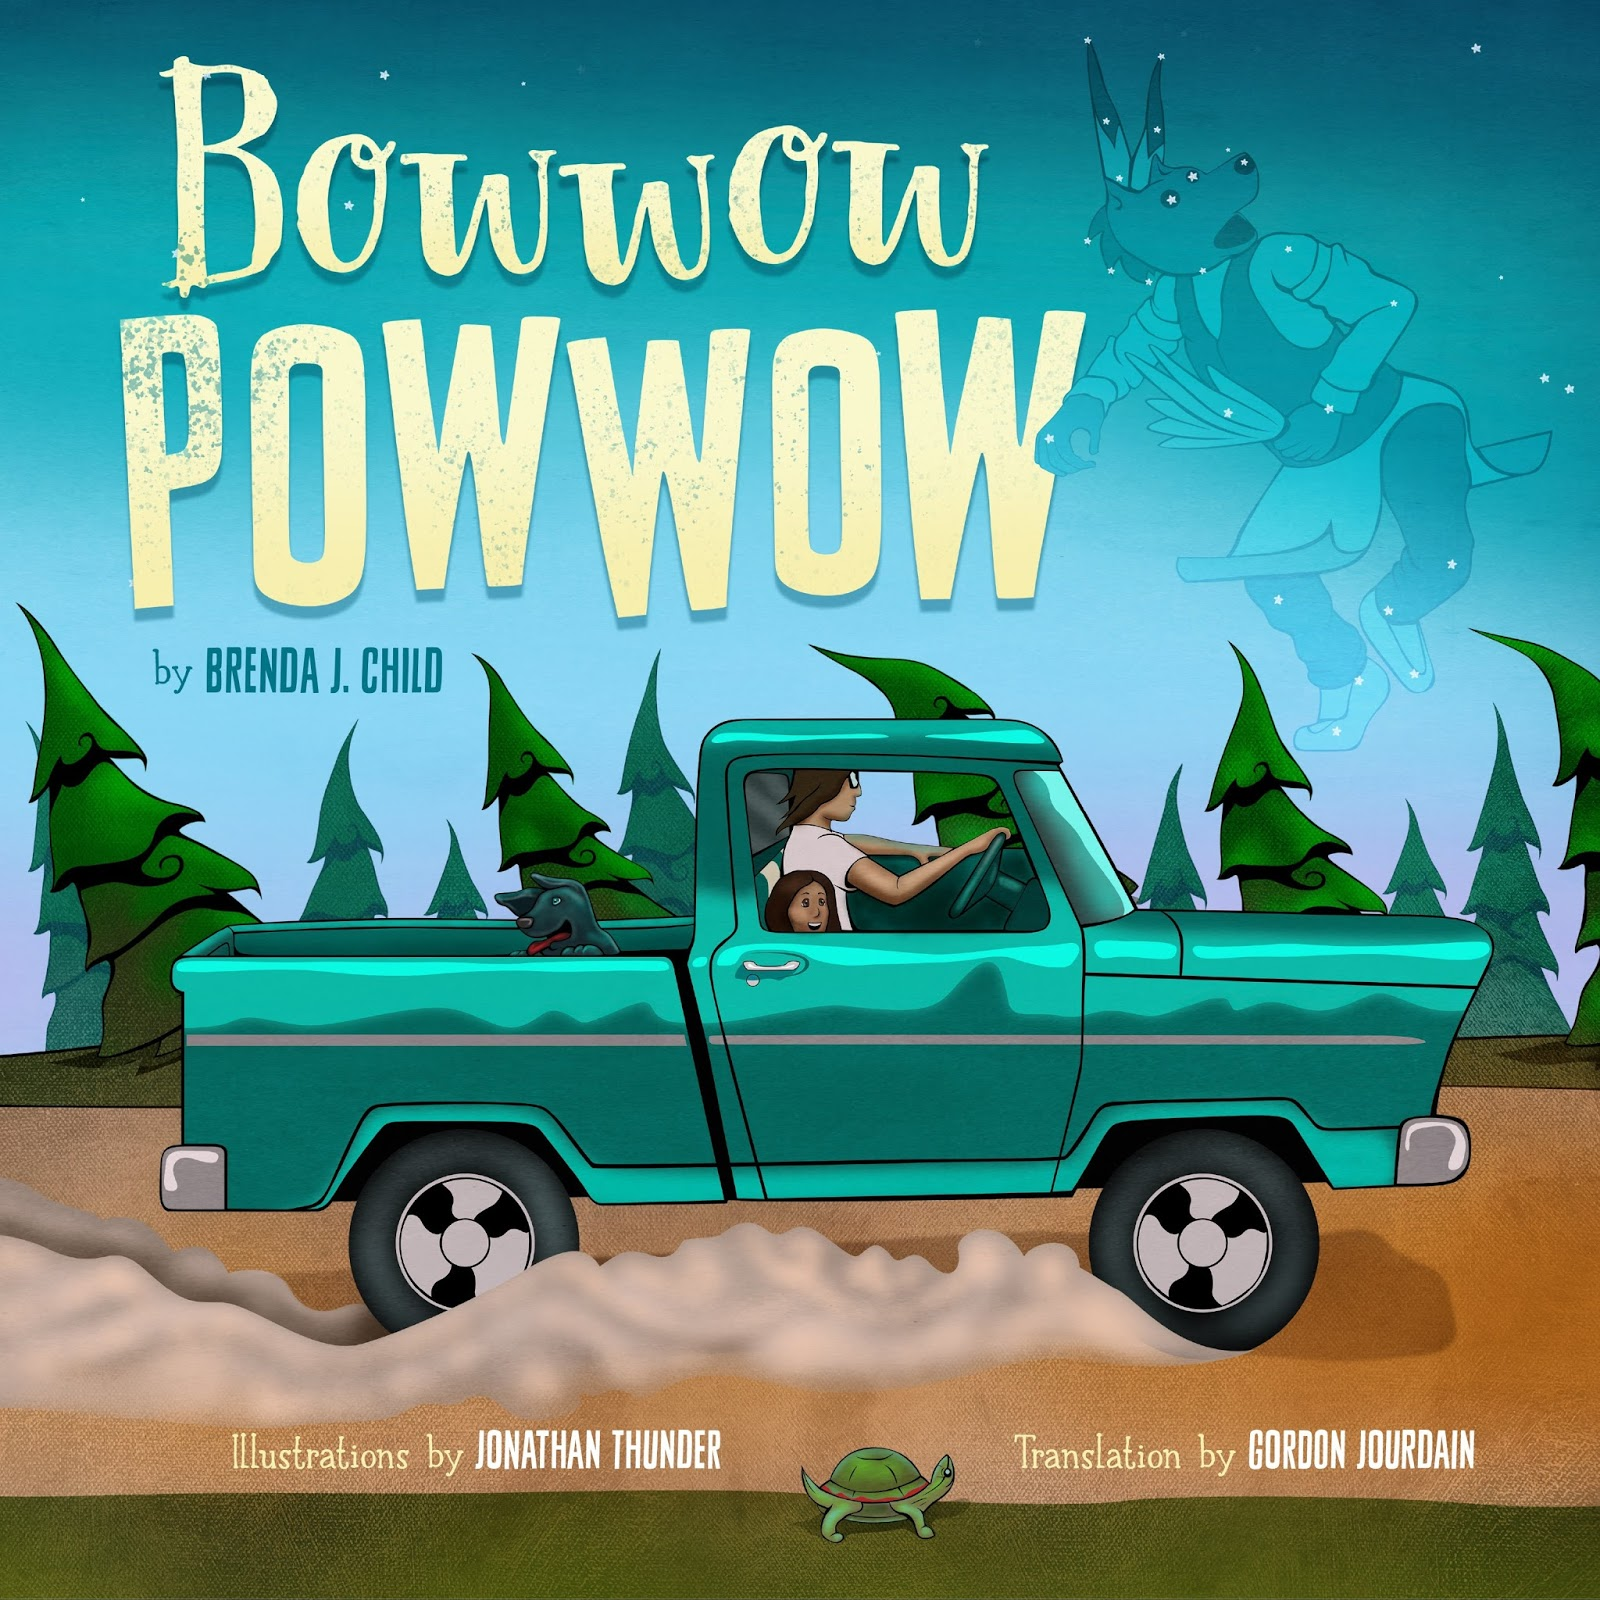 American indians in childrens literature aicl due out on may 1 of 2018 is an absolutely terrific book bowwow powwow written by brenda j child red lake ojibwe the story she tells was translated into biocorpaavc Images